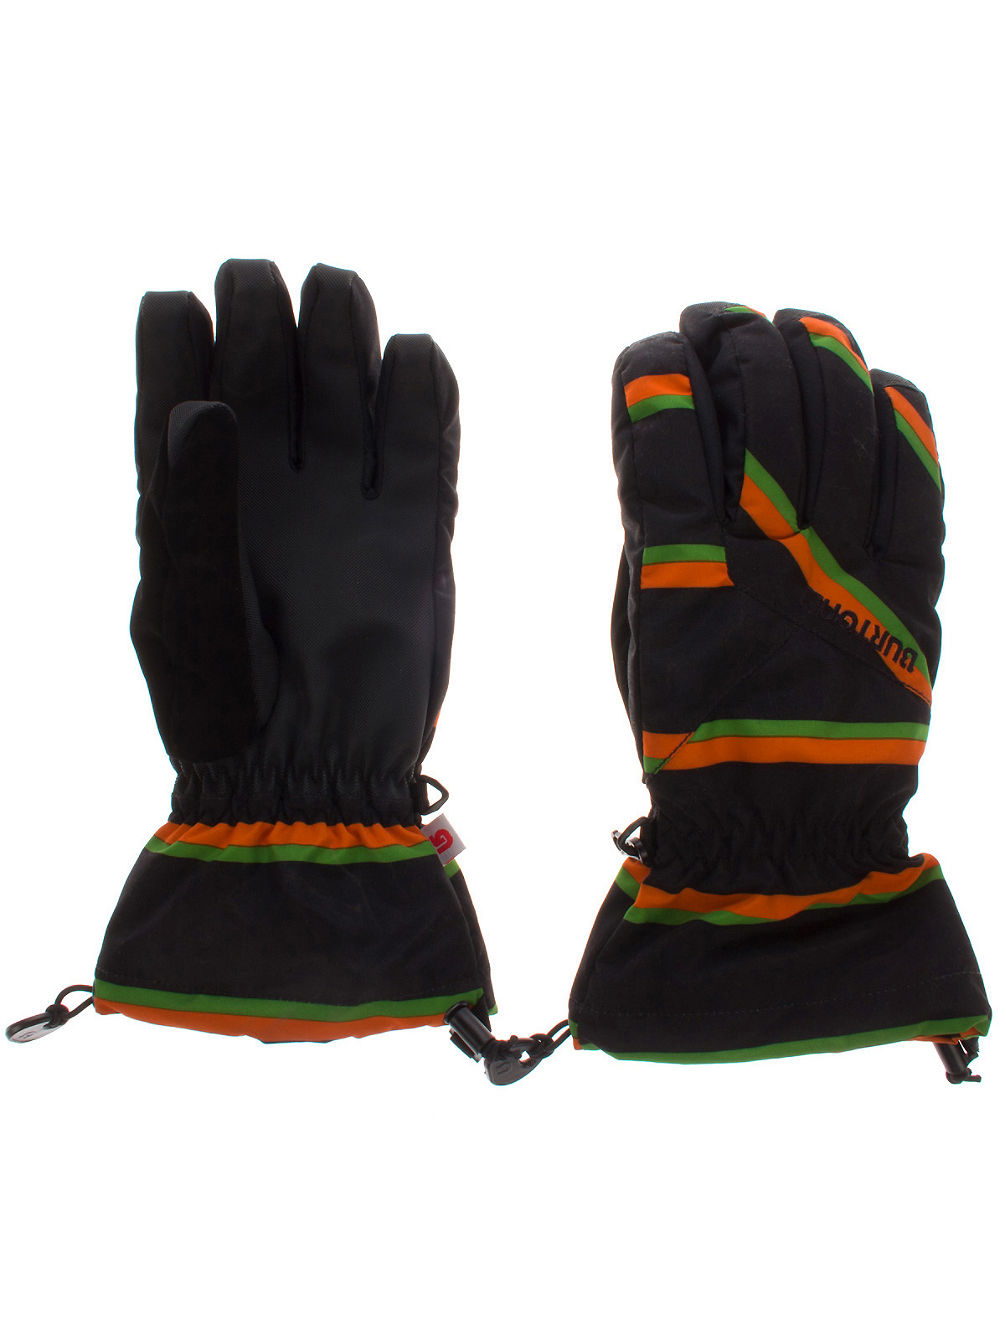 Profile Glove